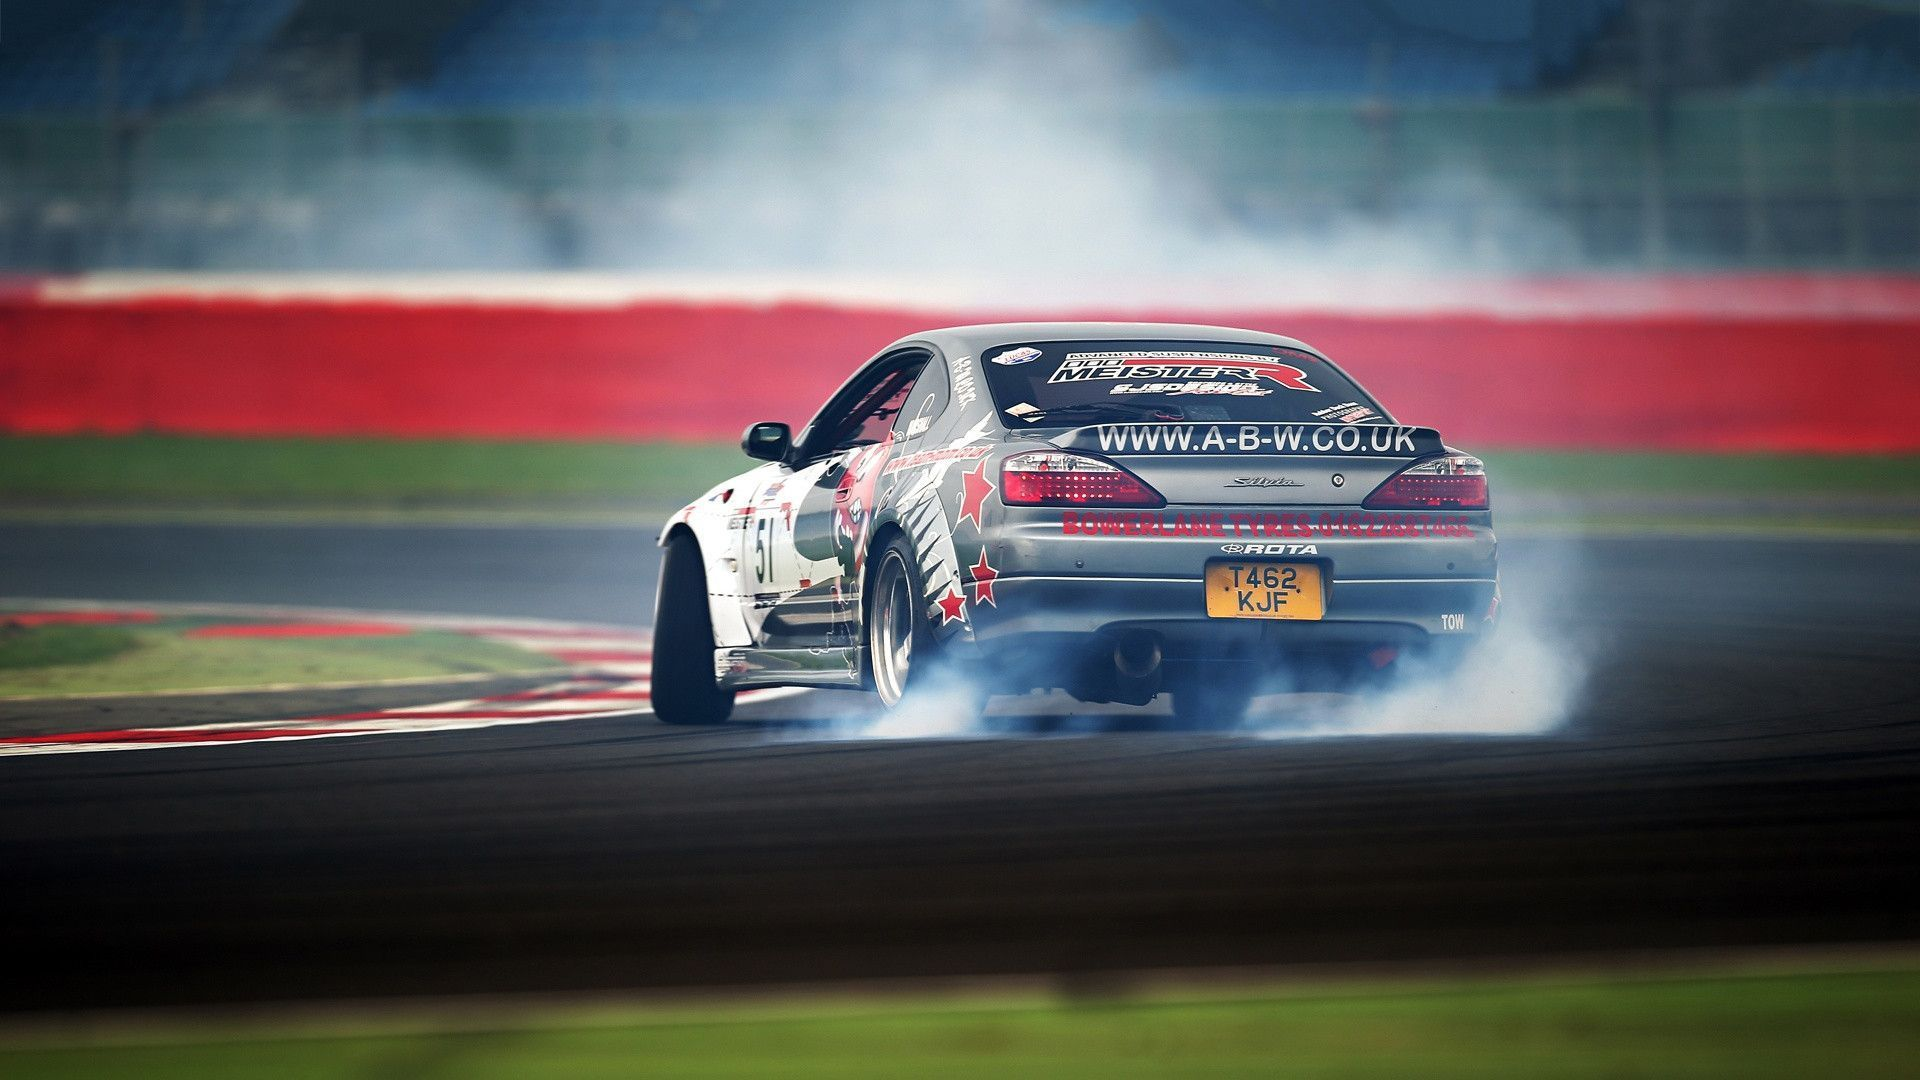 Supra Drift Wallpaper Full Hd Ntd Nissan Silvia Car Wallpapers